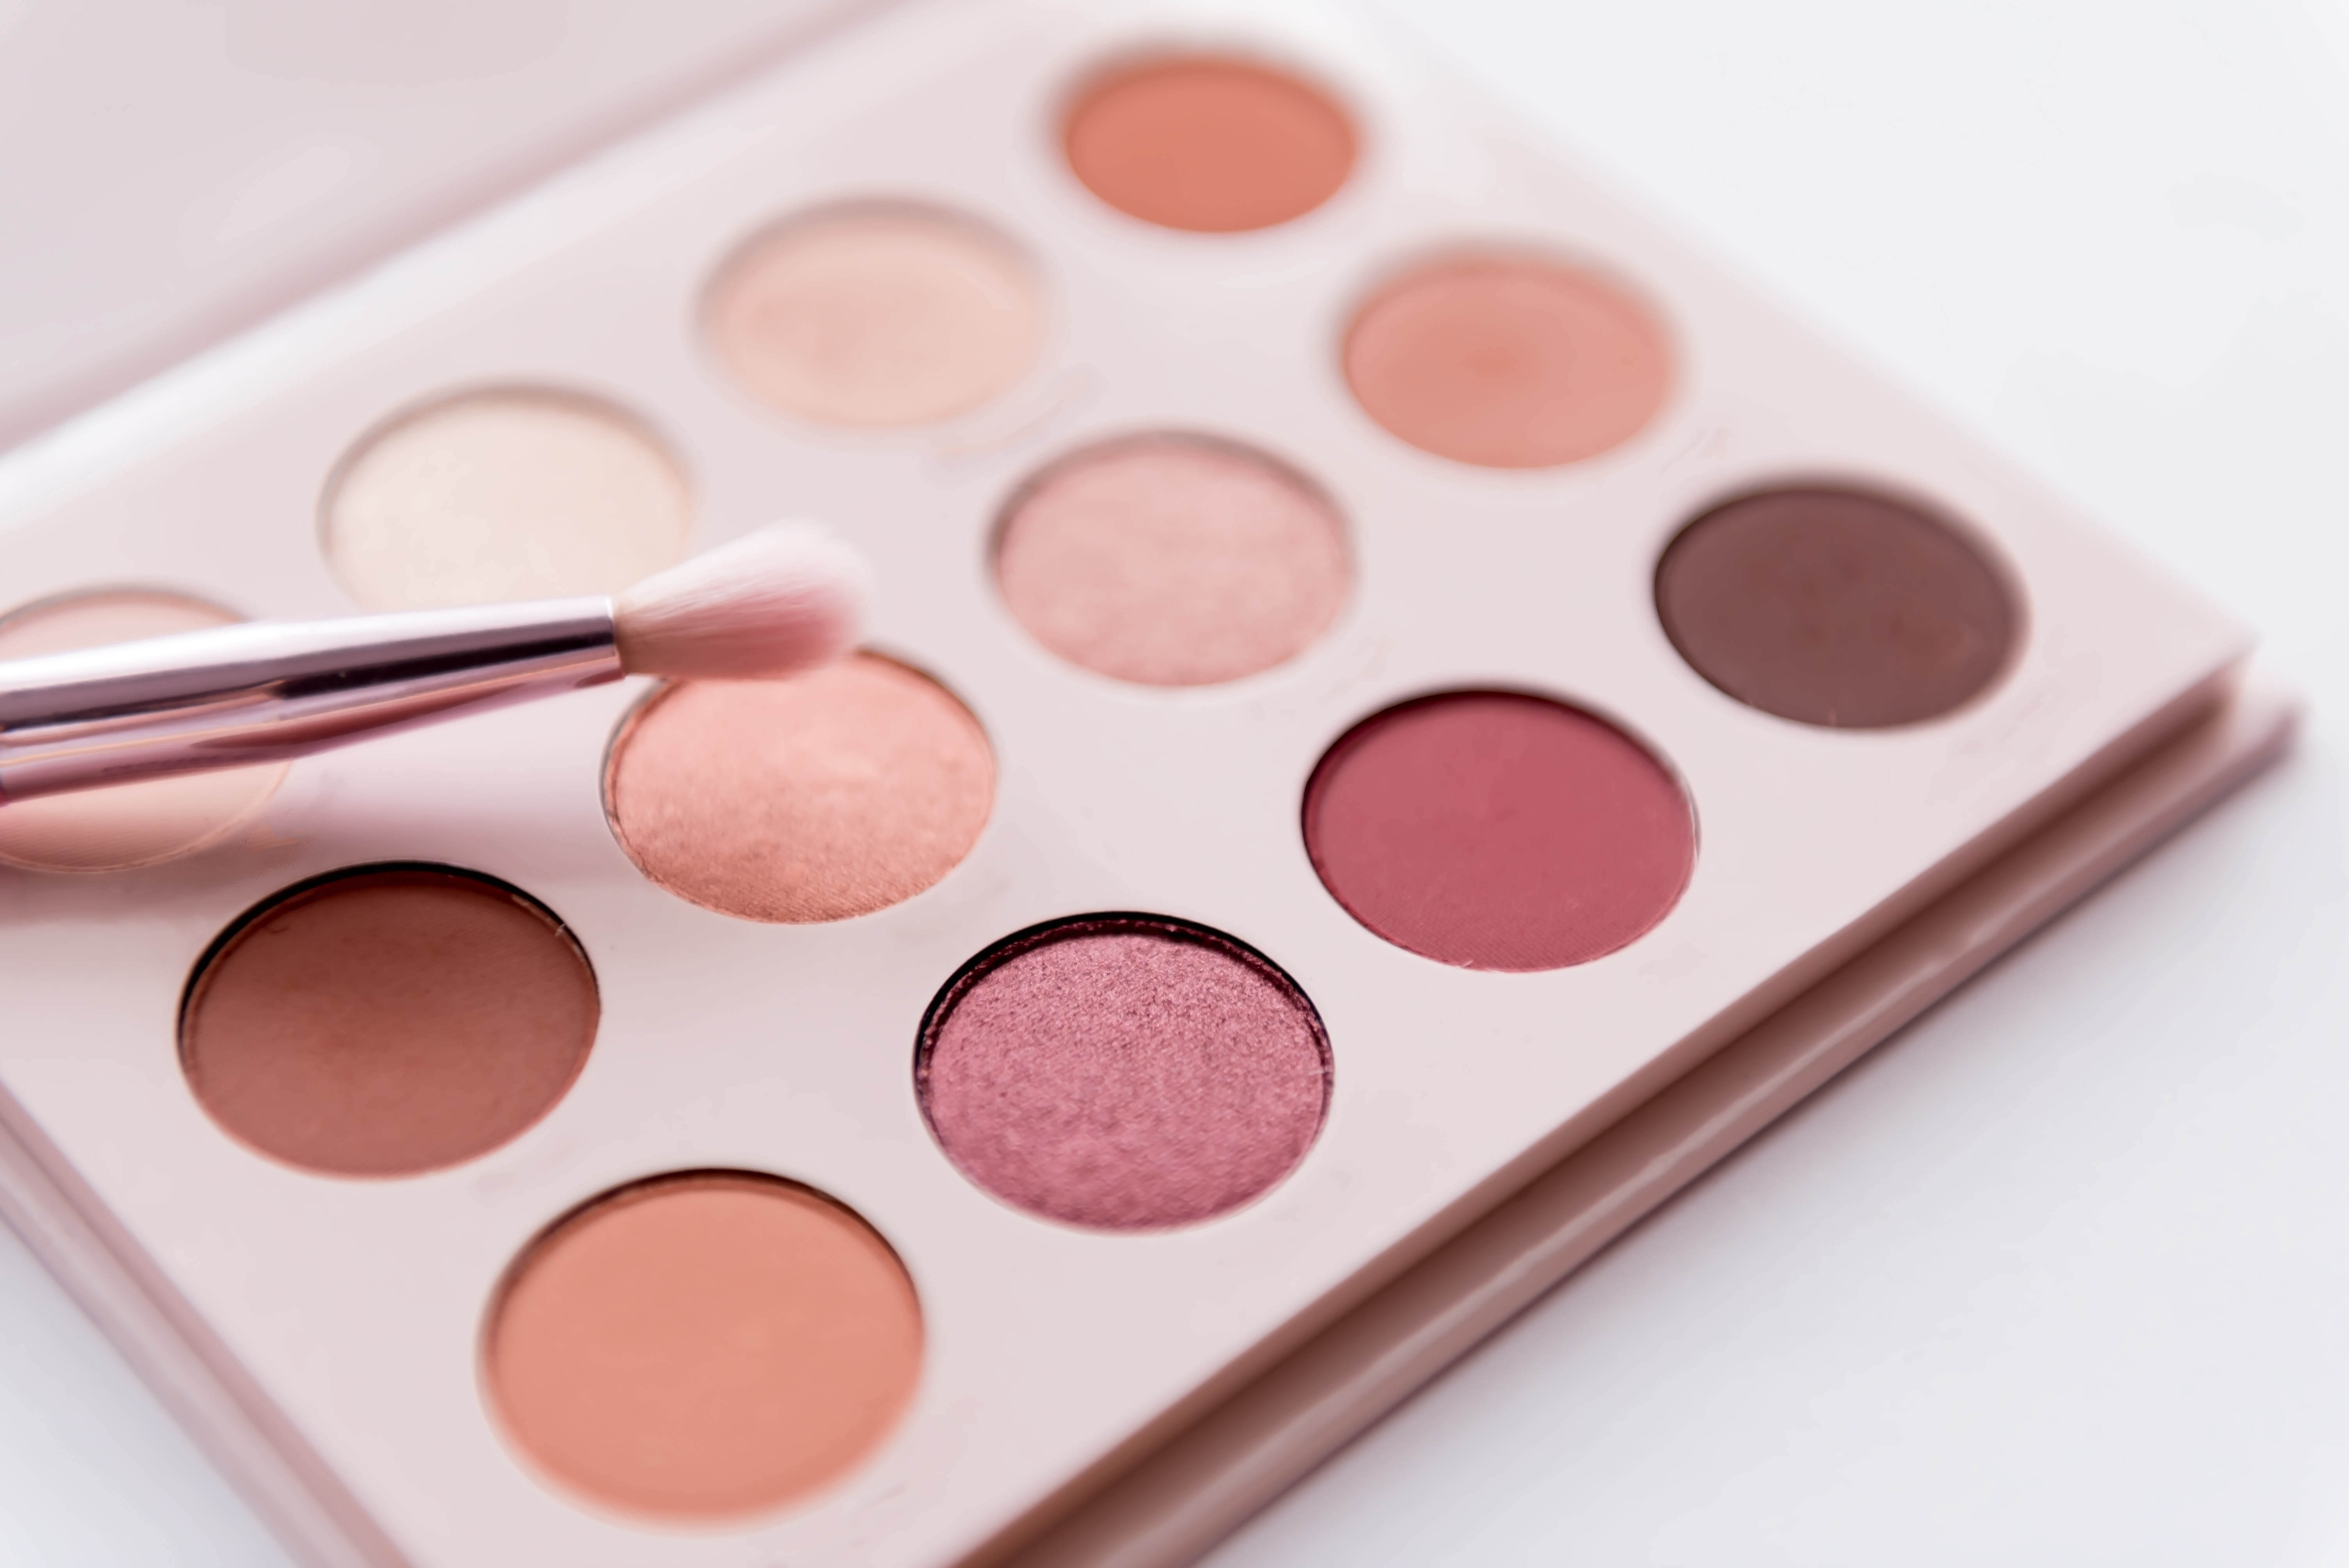 12 Nude Eyeshadow Palettes To Try If You Love Urban Decay